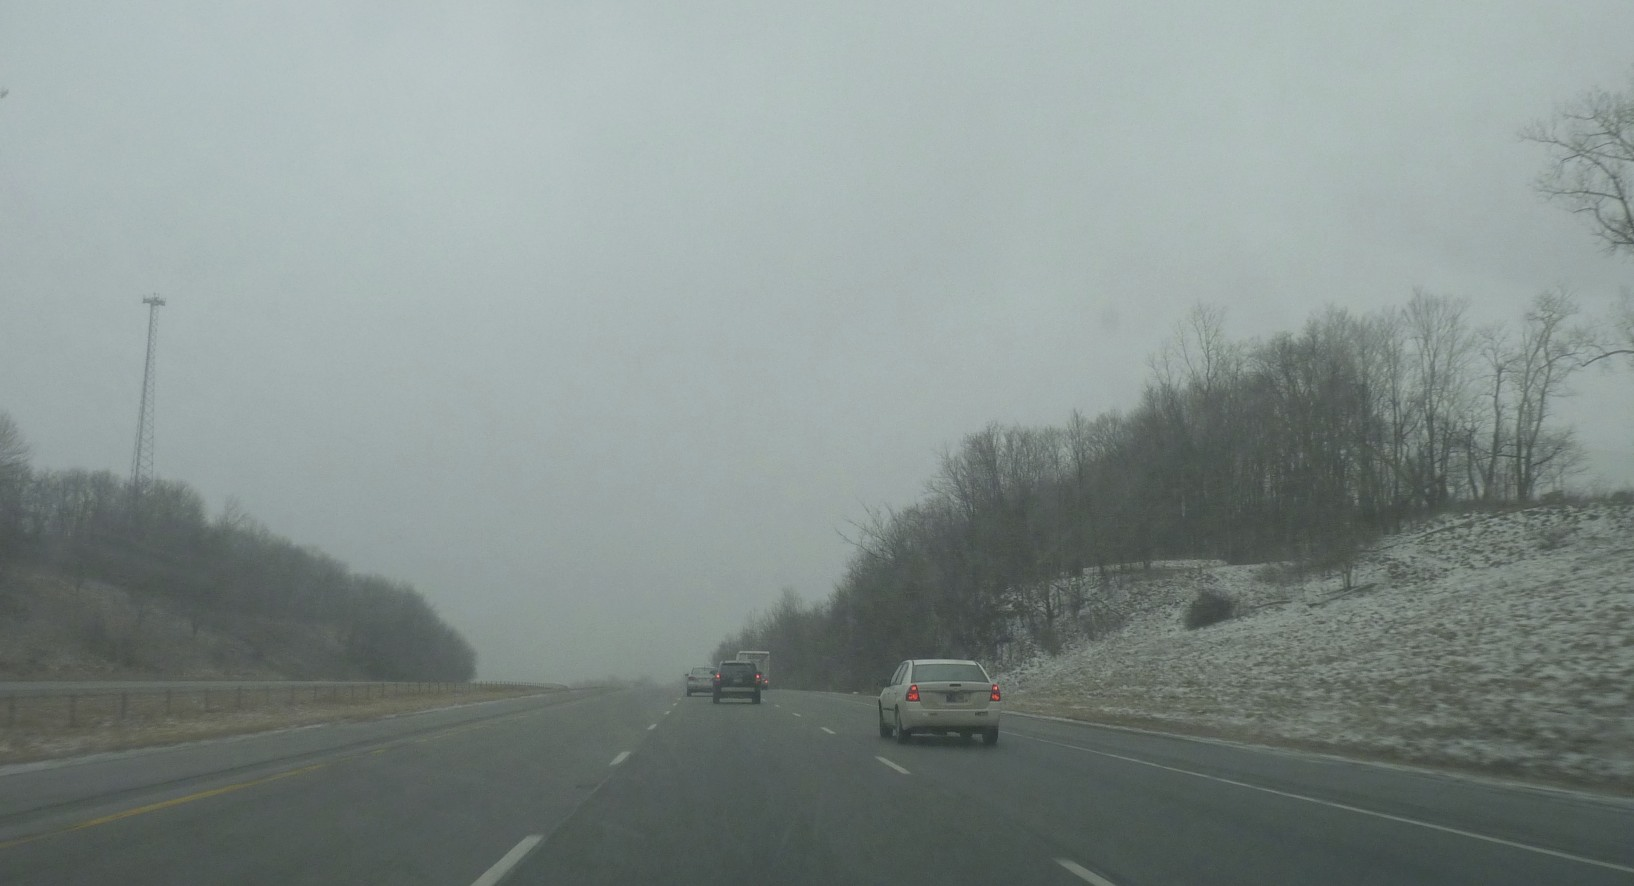 It was a long snowy drive after the races.